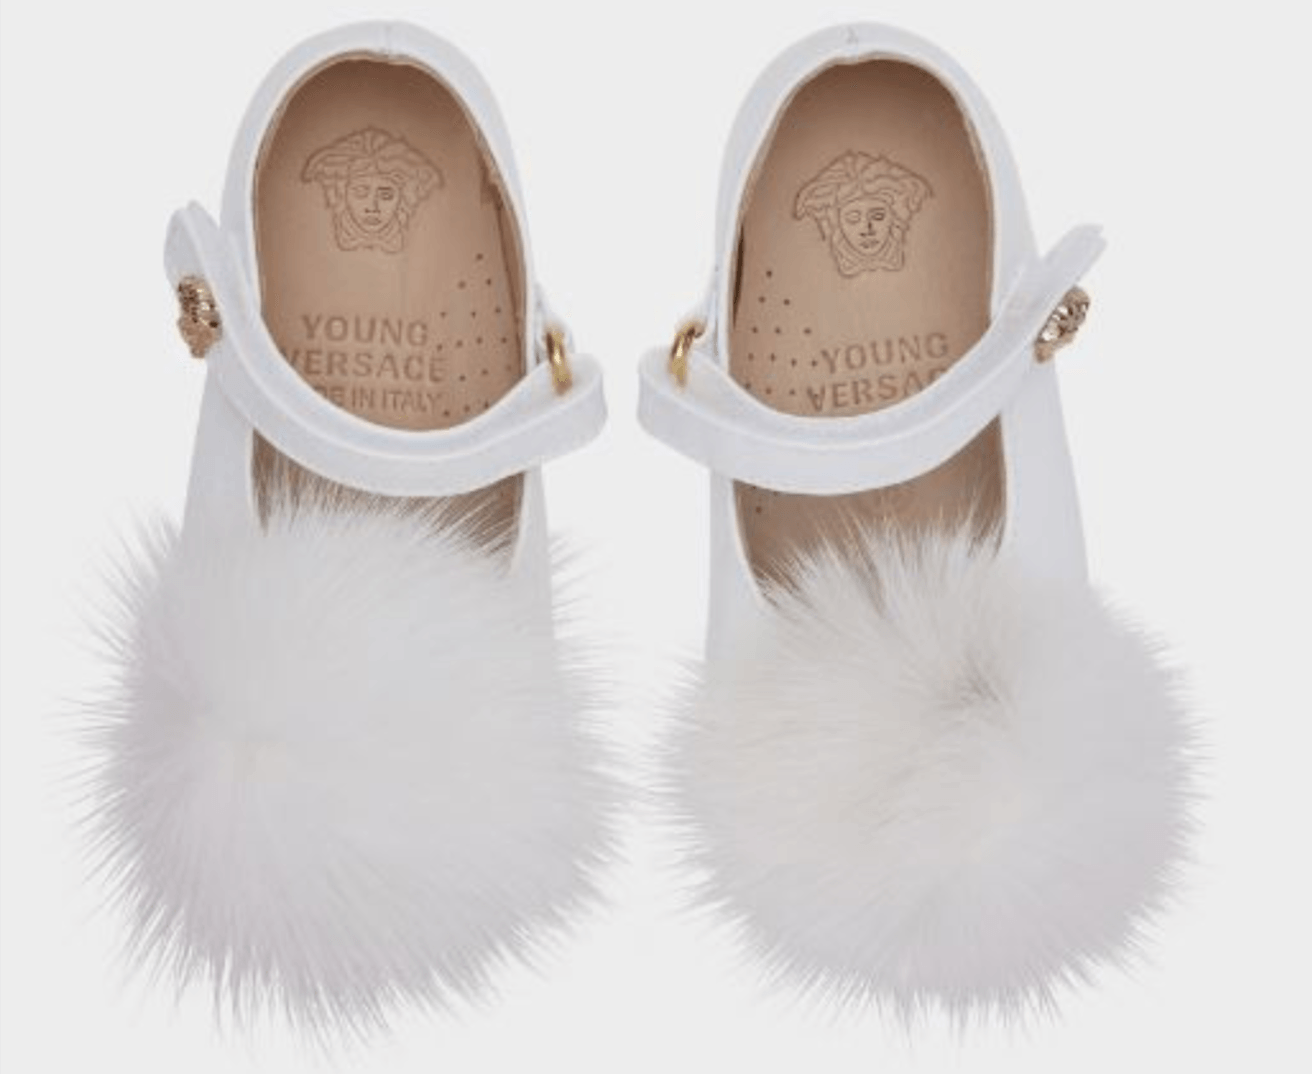 Versace young shoes